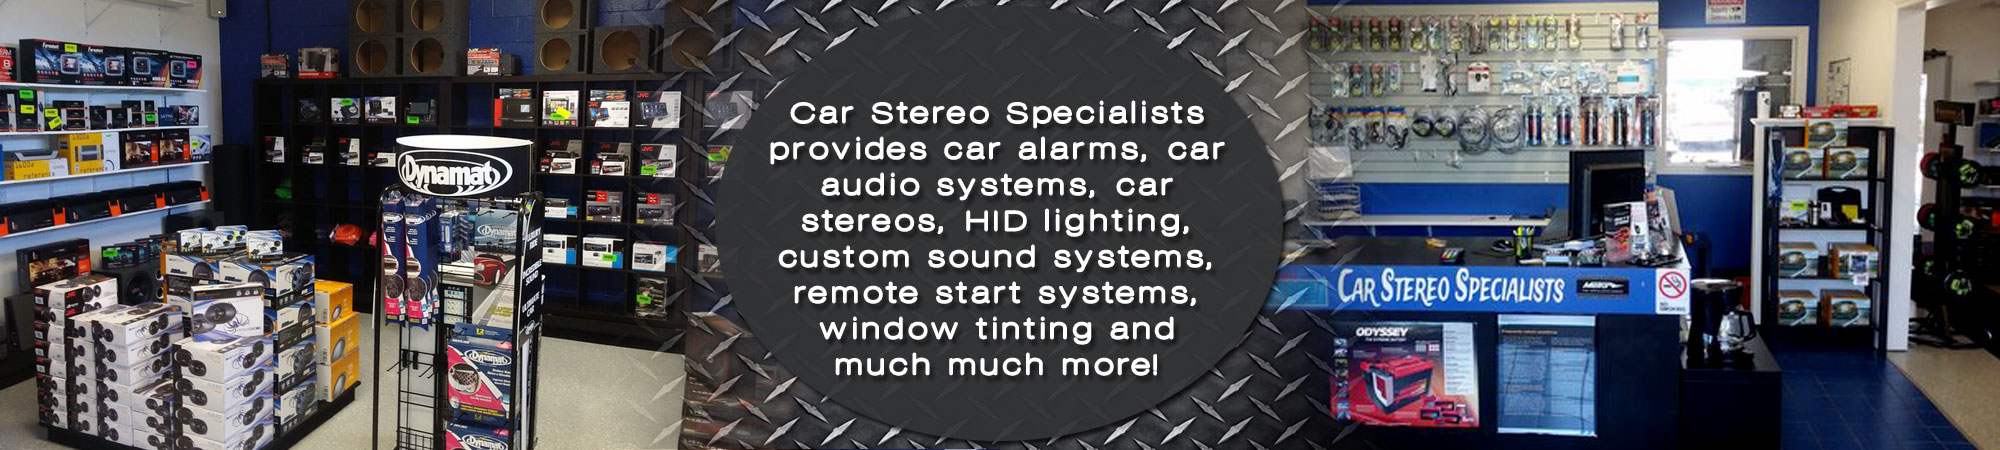 The Best Car Stereo Installation in Portlan OR - Yelp